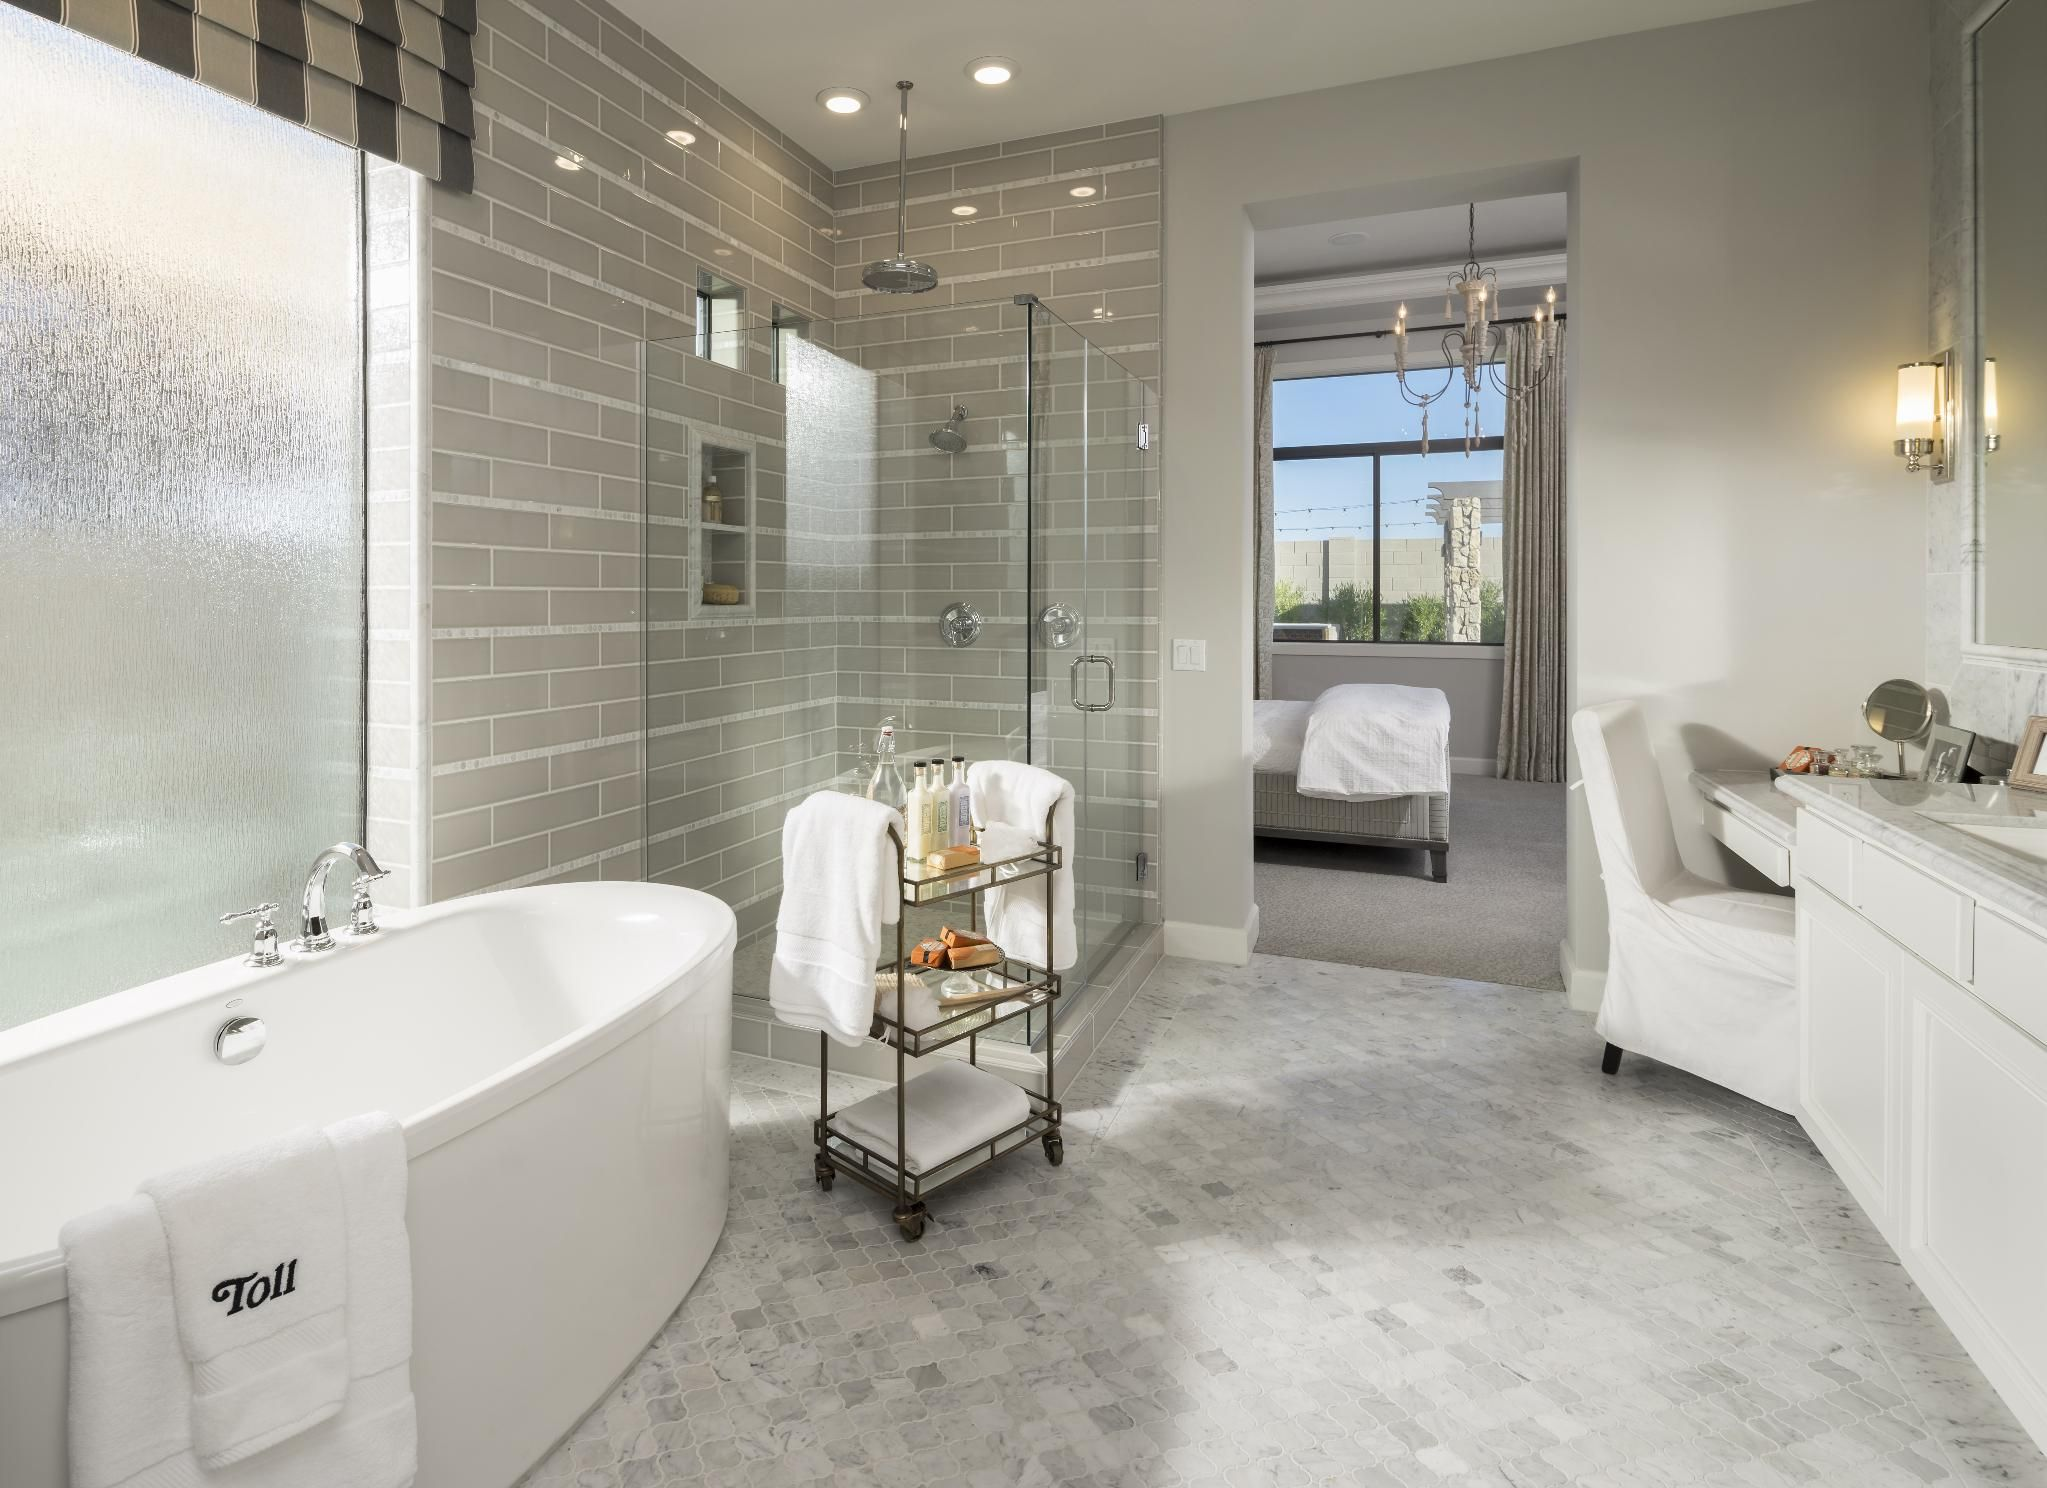 141 Best Bathrooms Images On Pinterest  Bathrooms Master New Bathroom Design Northampton Decorating Inspiration